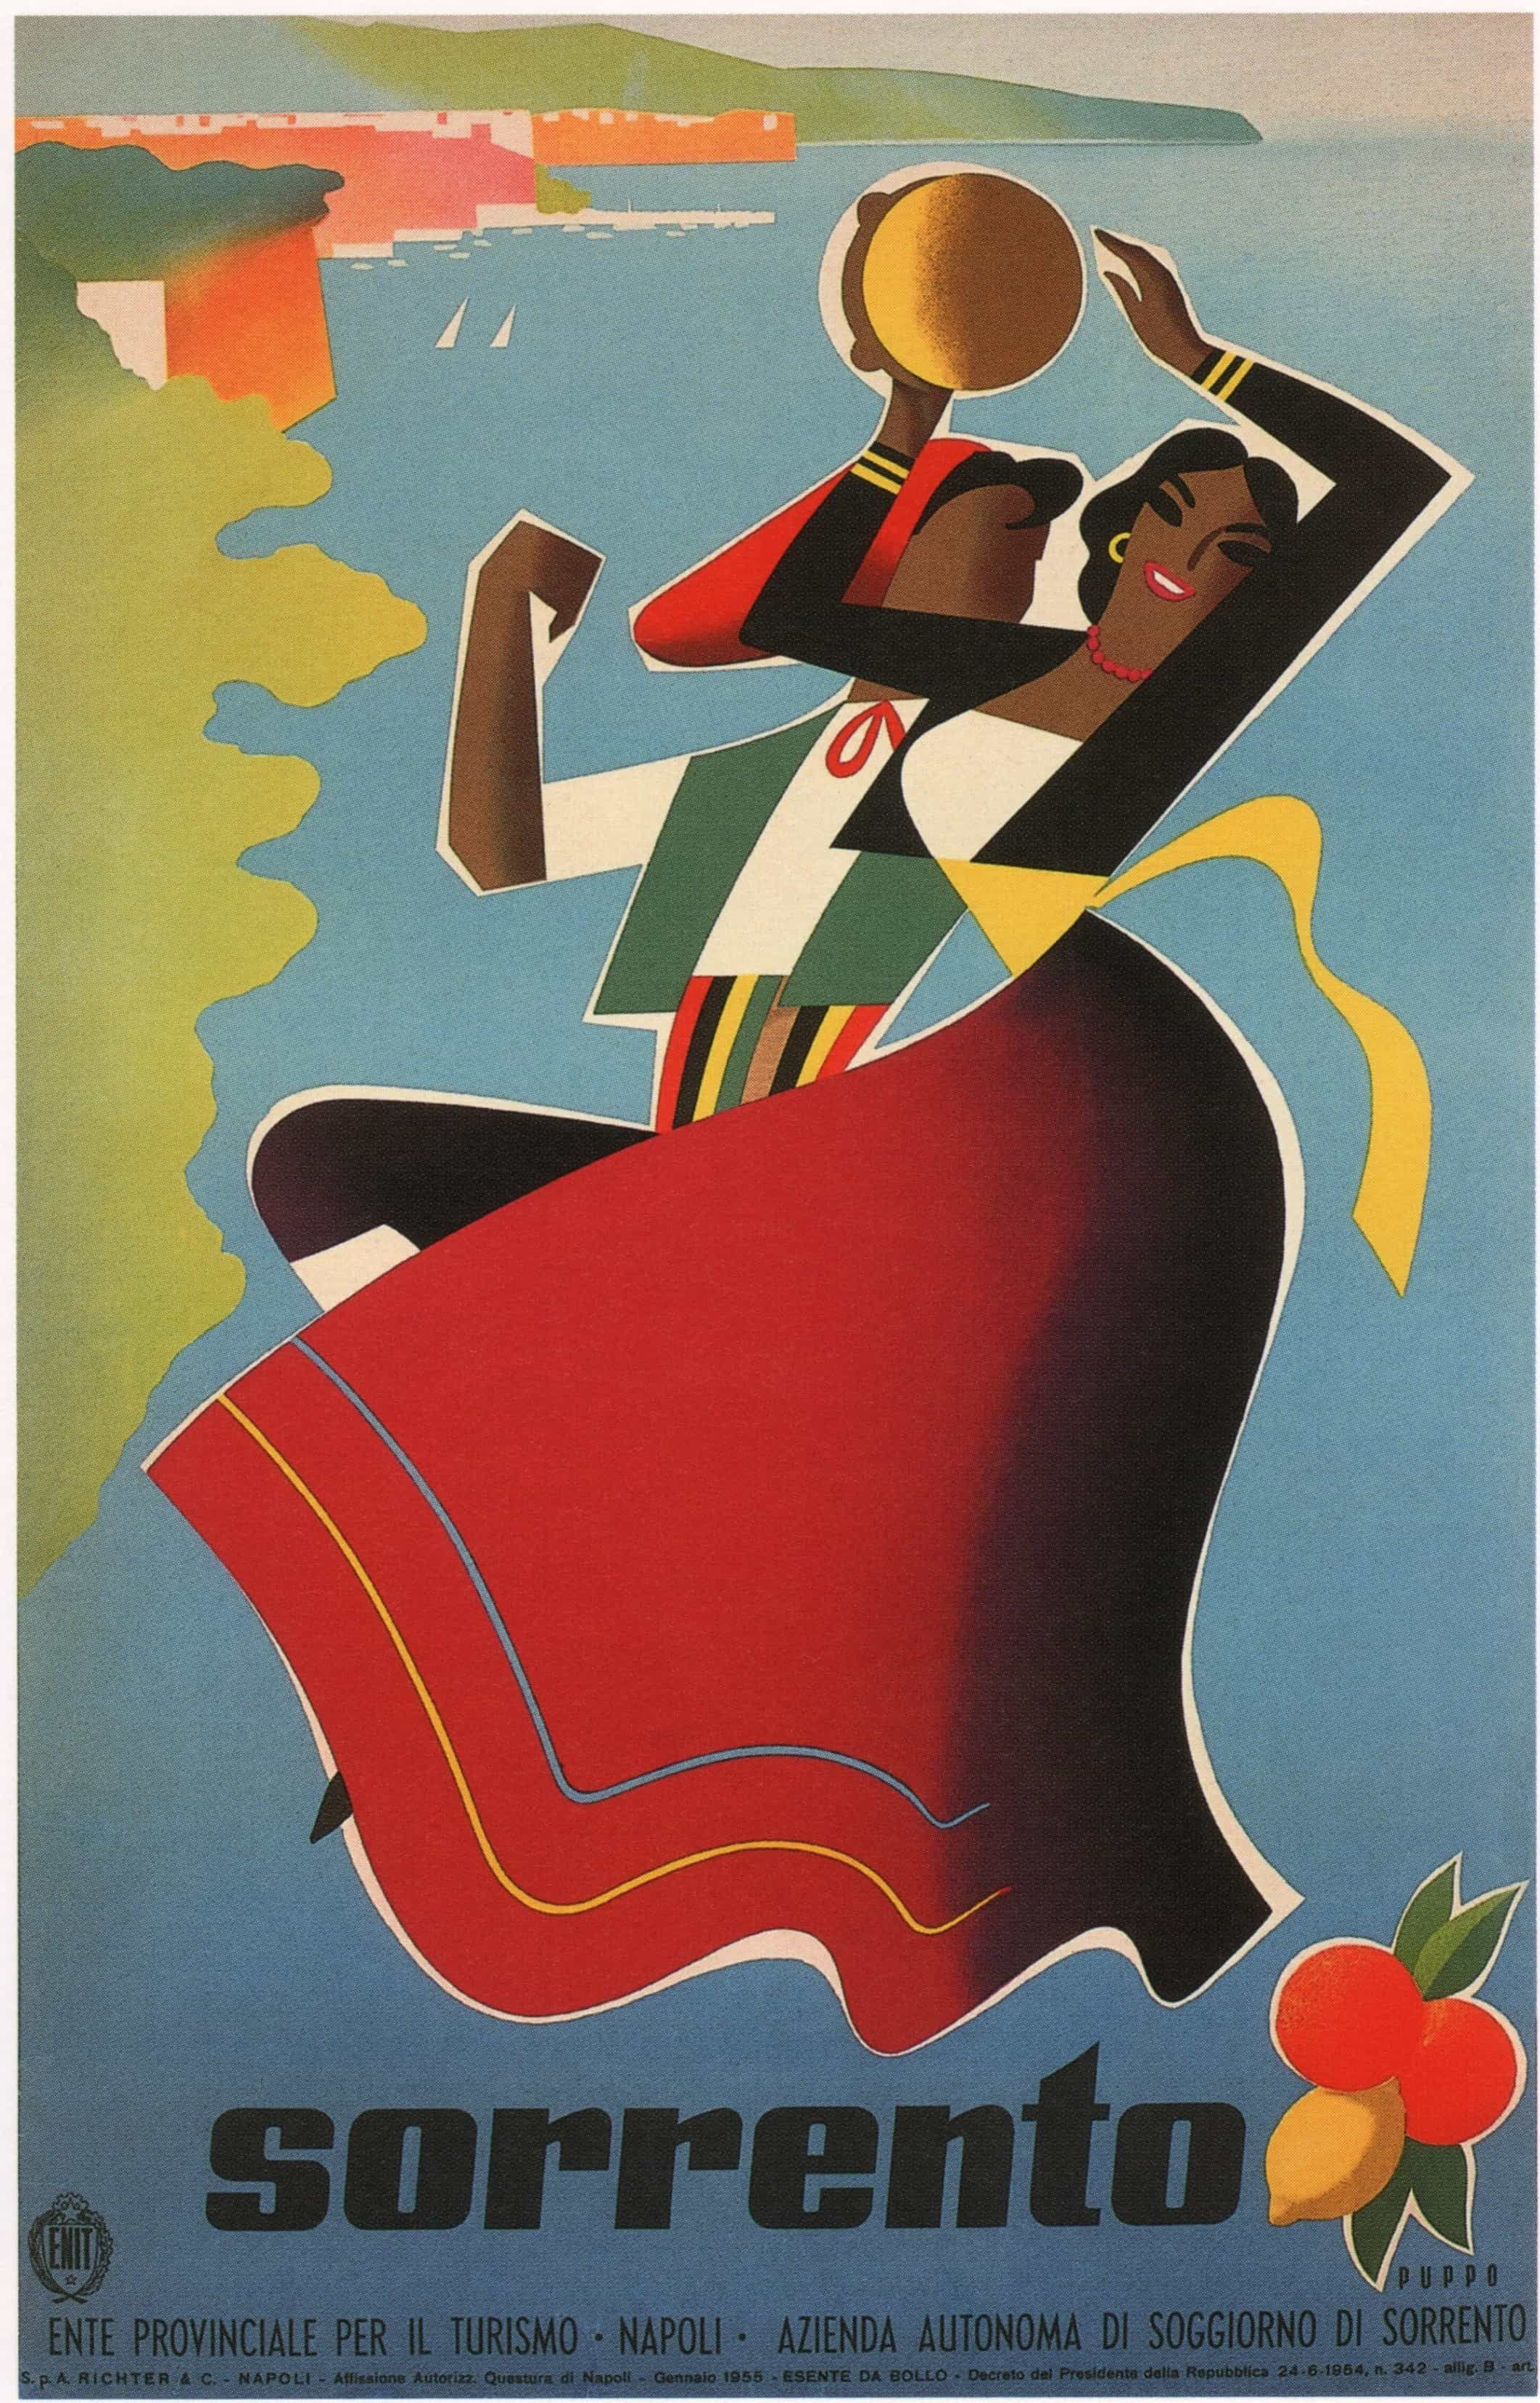 Sorrento Vintage Travel Poster, 1955 | Sorrento, Vintage travel and ...